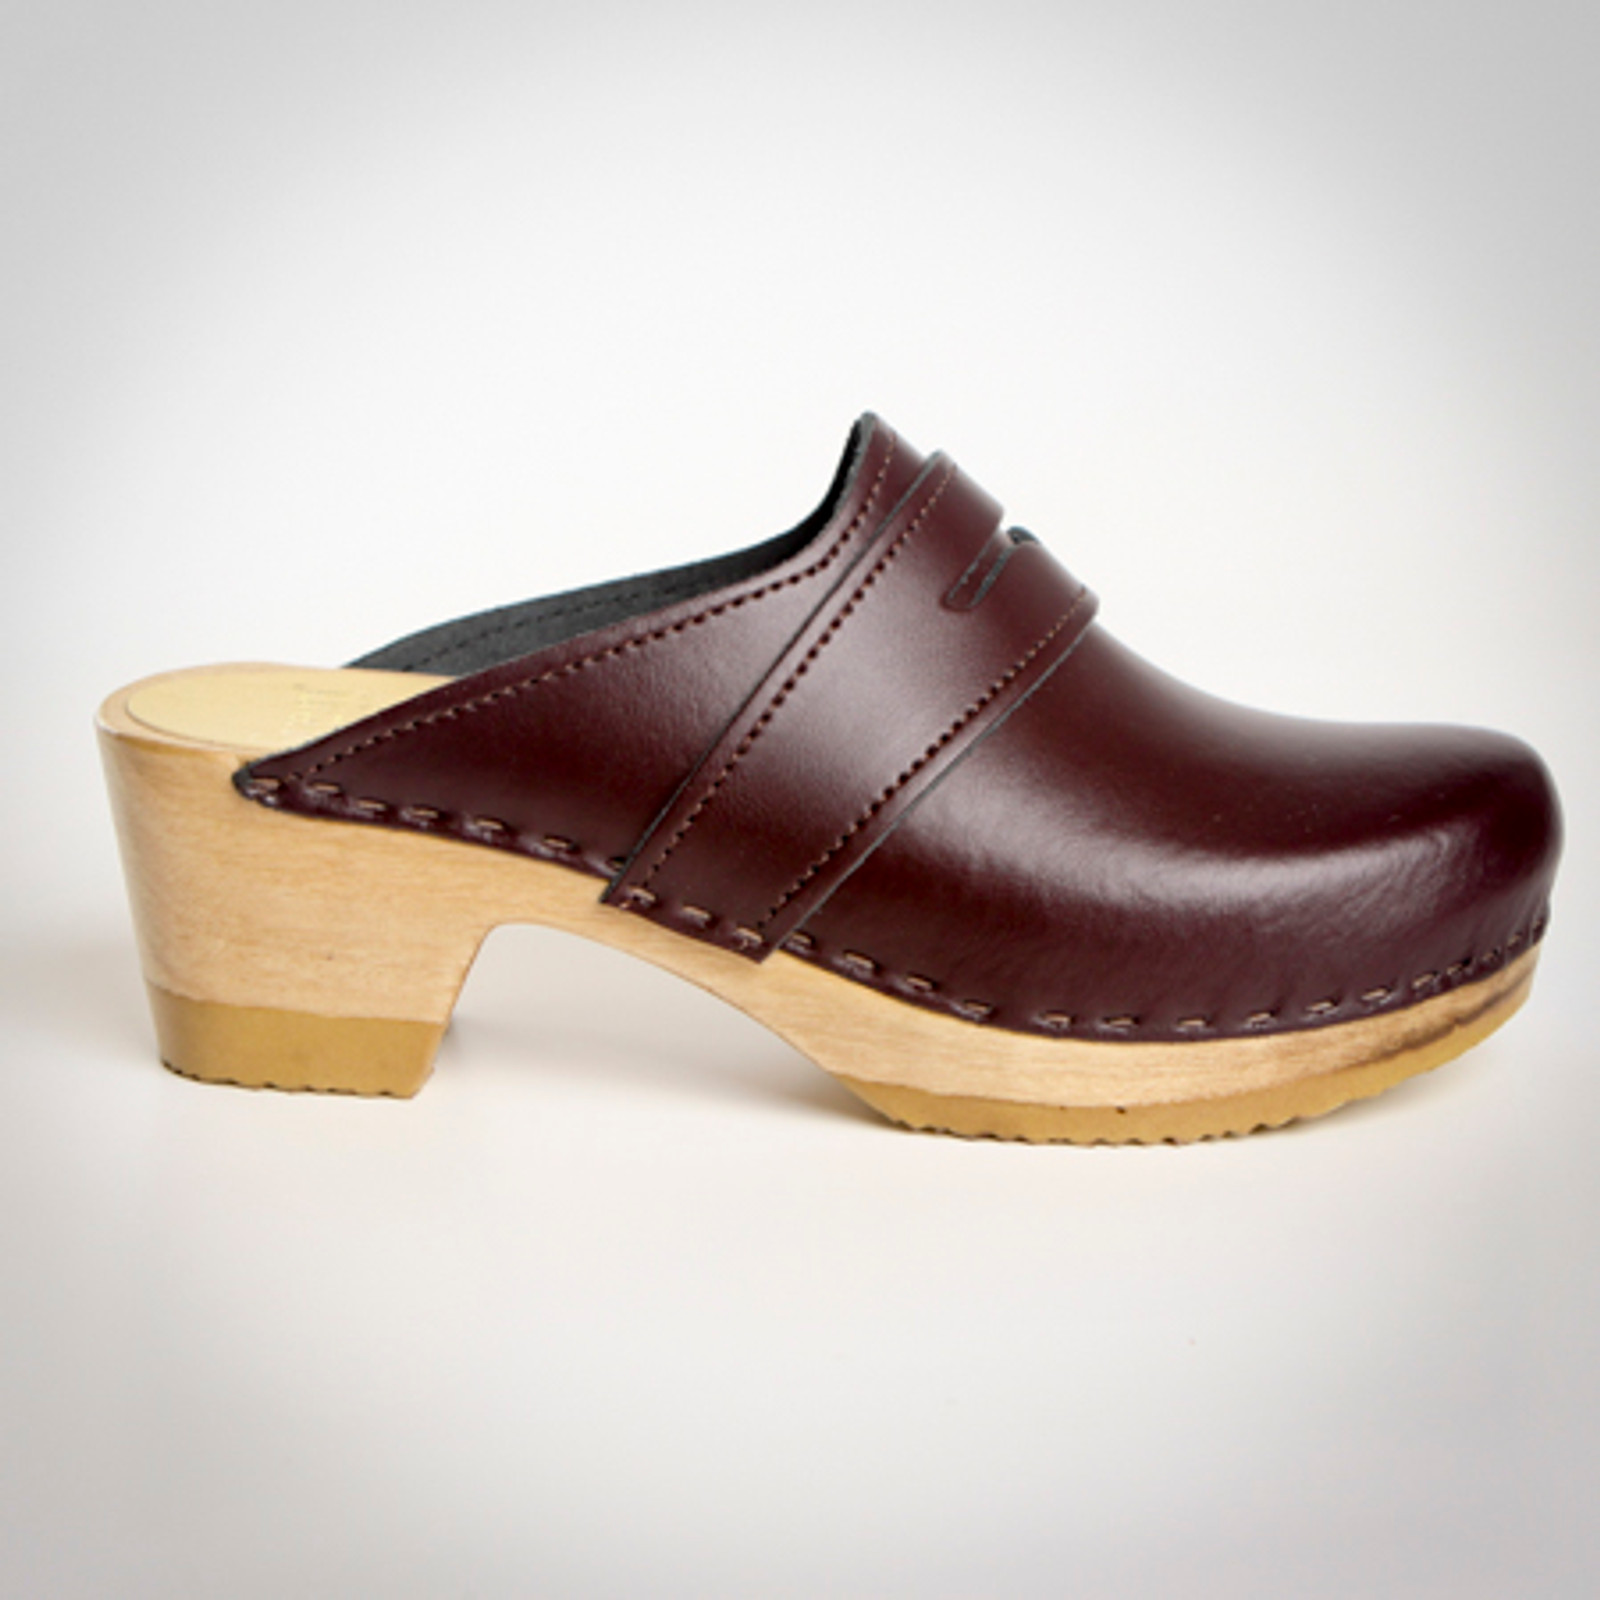 Penny Loafer Clogs - Mid Heels